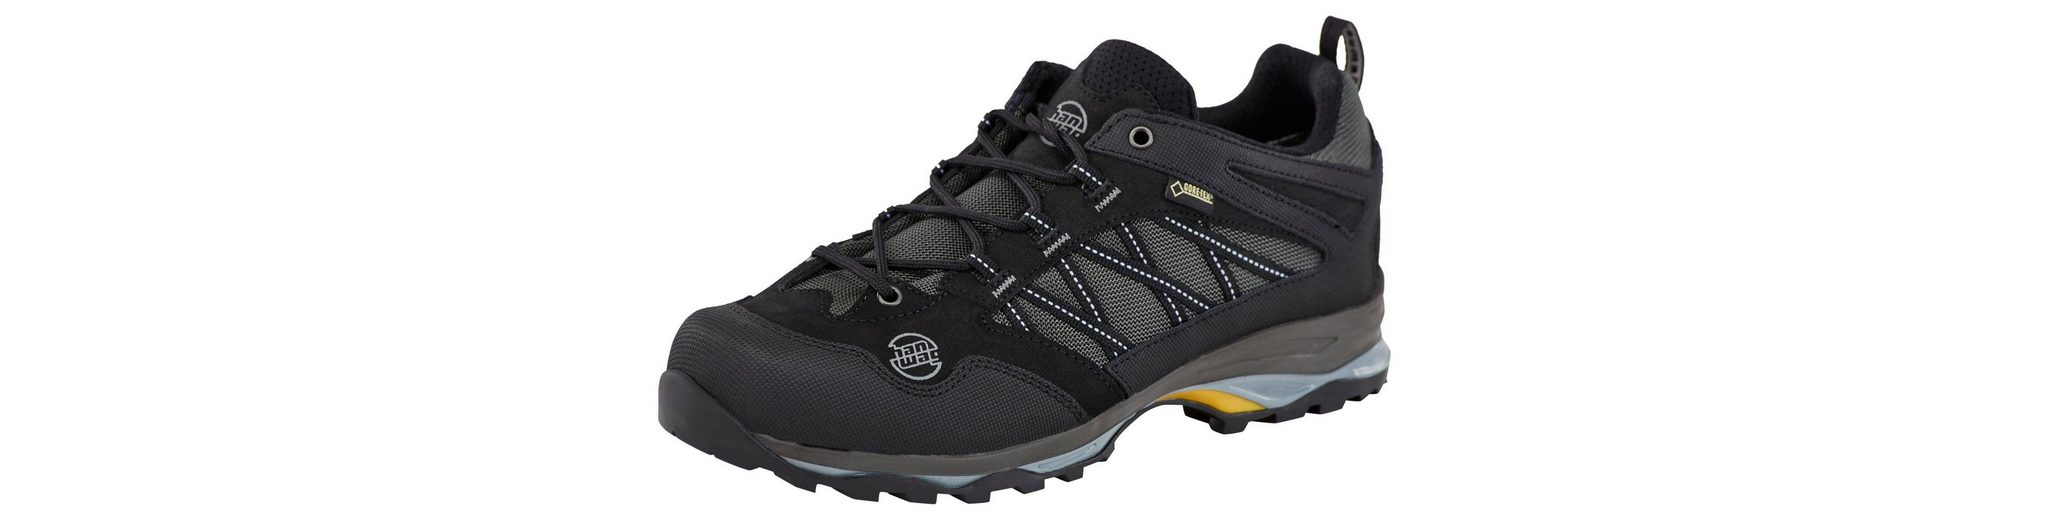 Original Auslass Visa Zahlung Hanwag Kletterschuh Belorado Low Bunion GTX Trekking Shoes Men Bilder 8SfXc